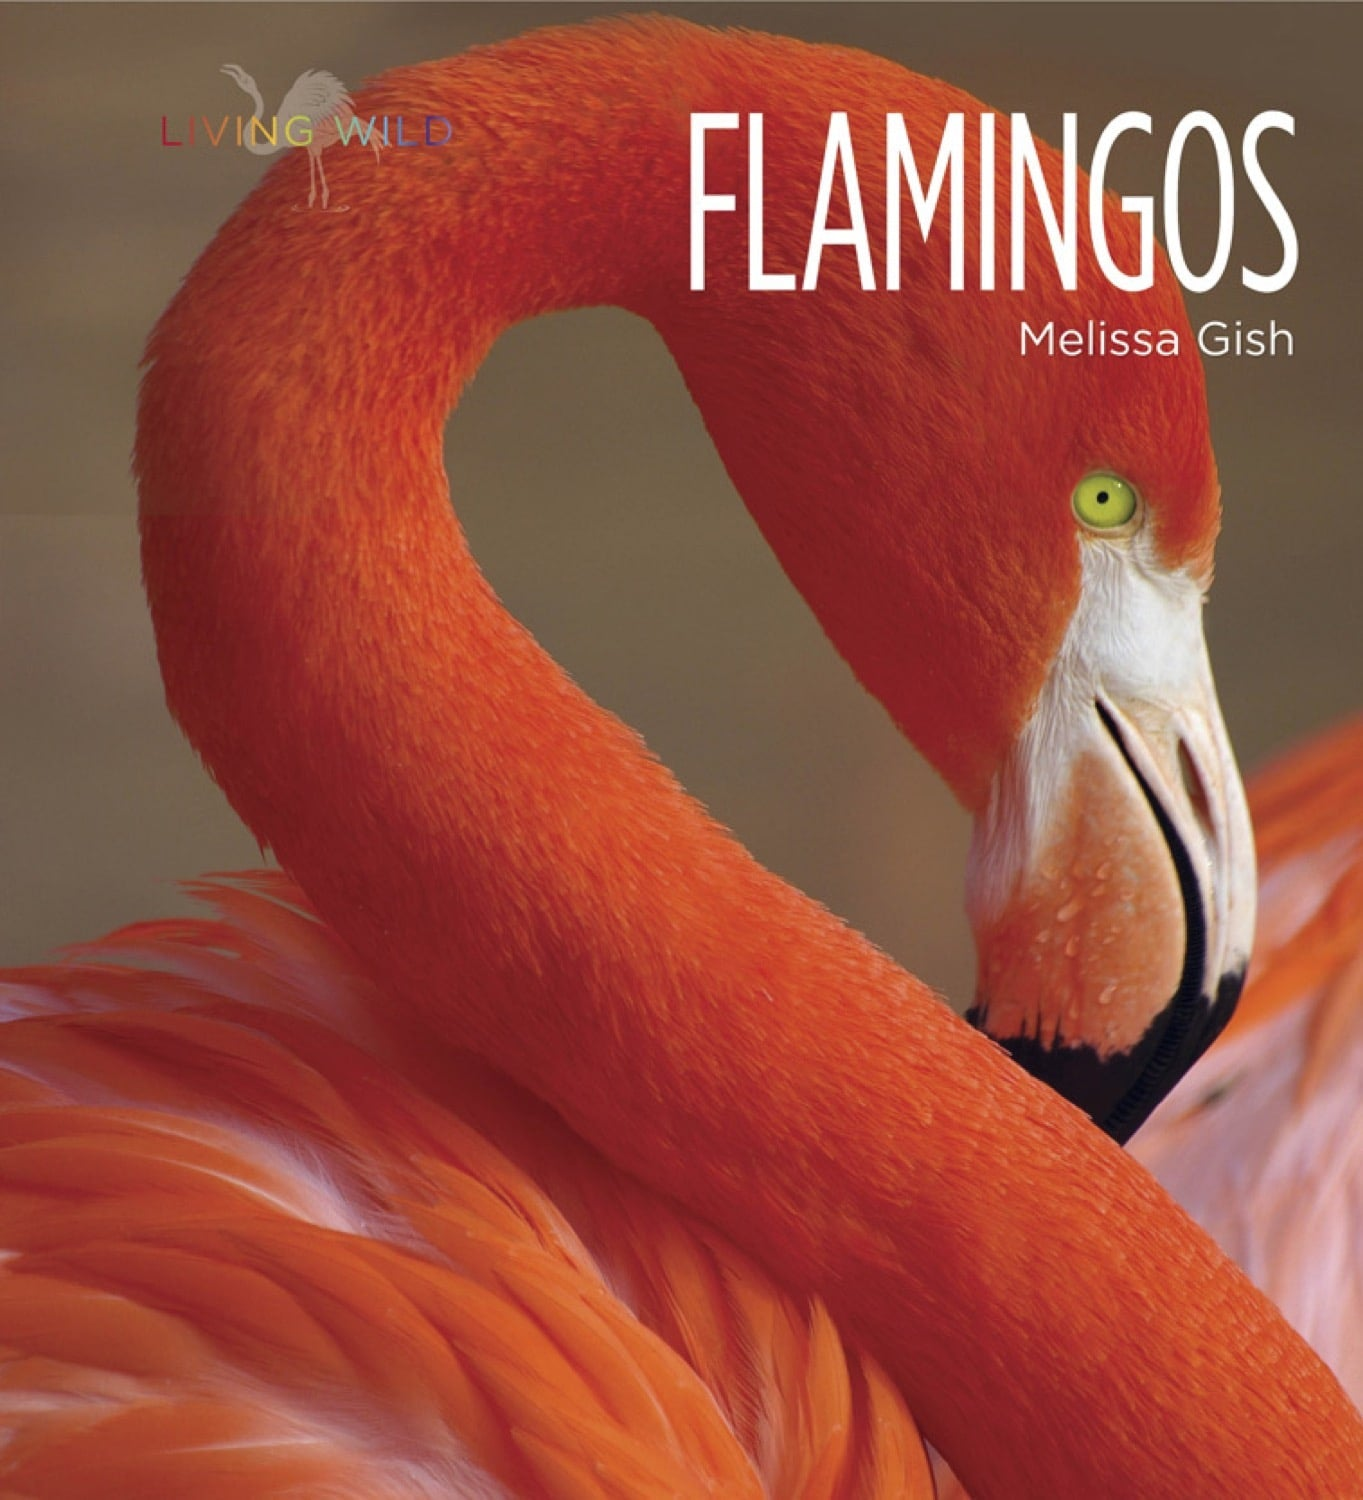 Living Wild: Flamingos